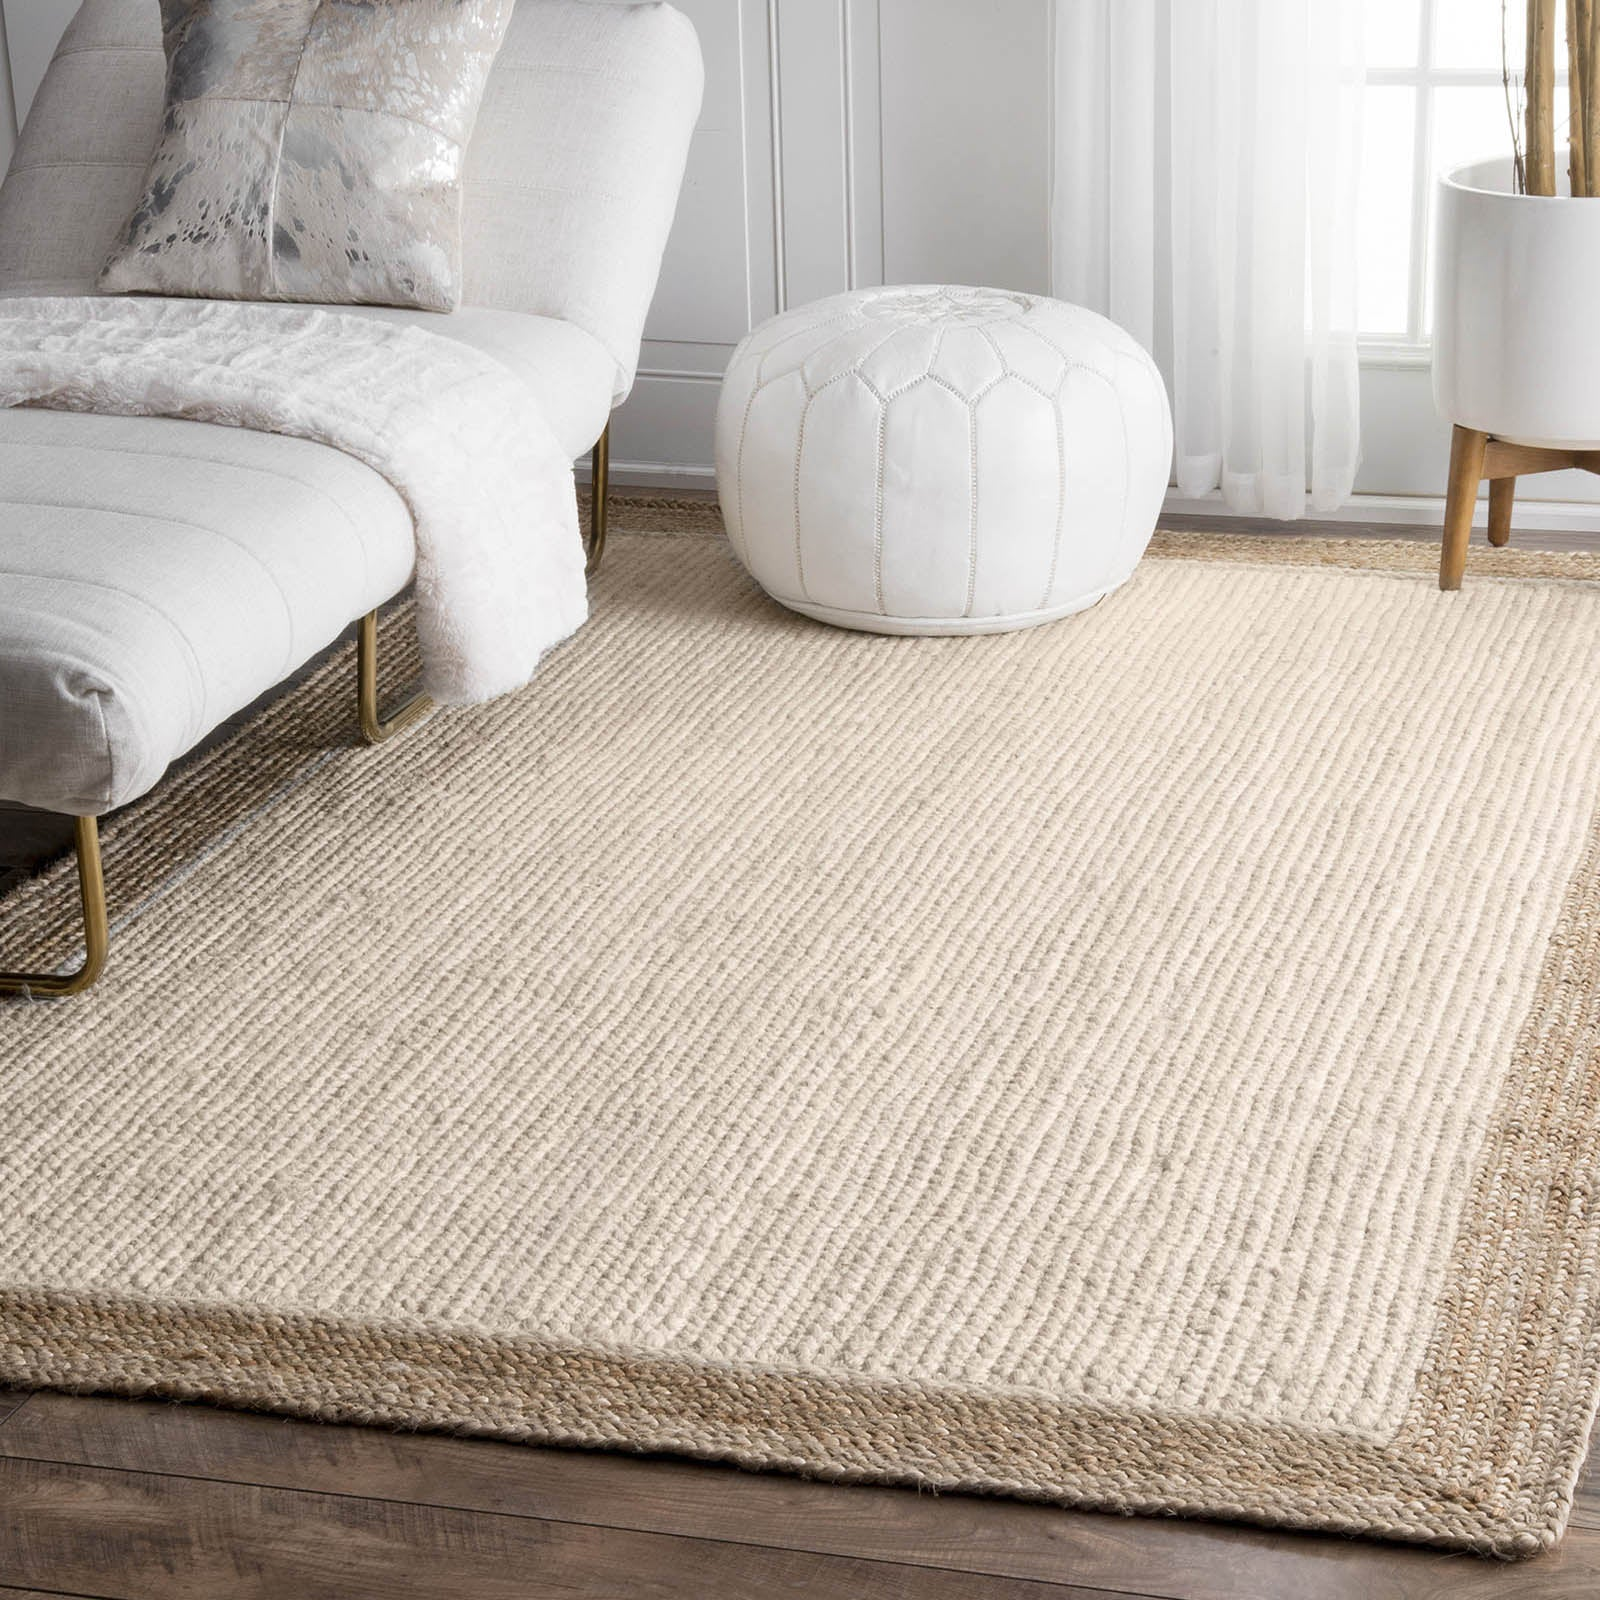 230x160 cm Braided Handmade Jute Rug Braided-001L